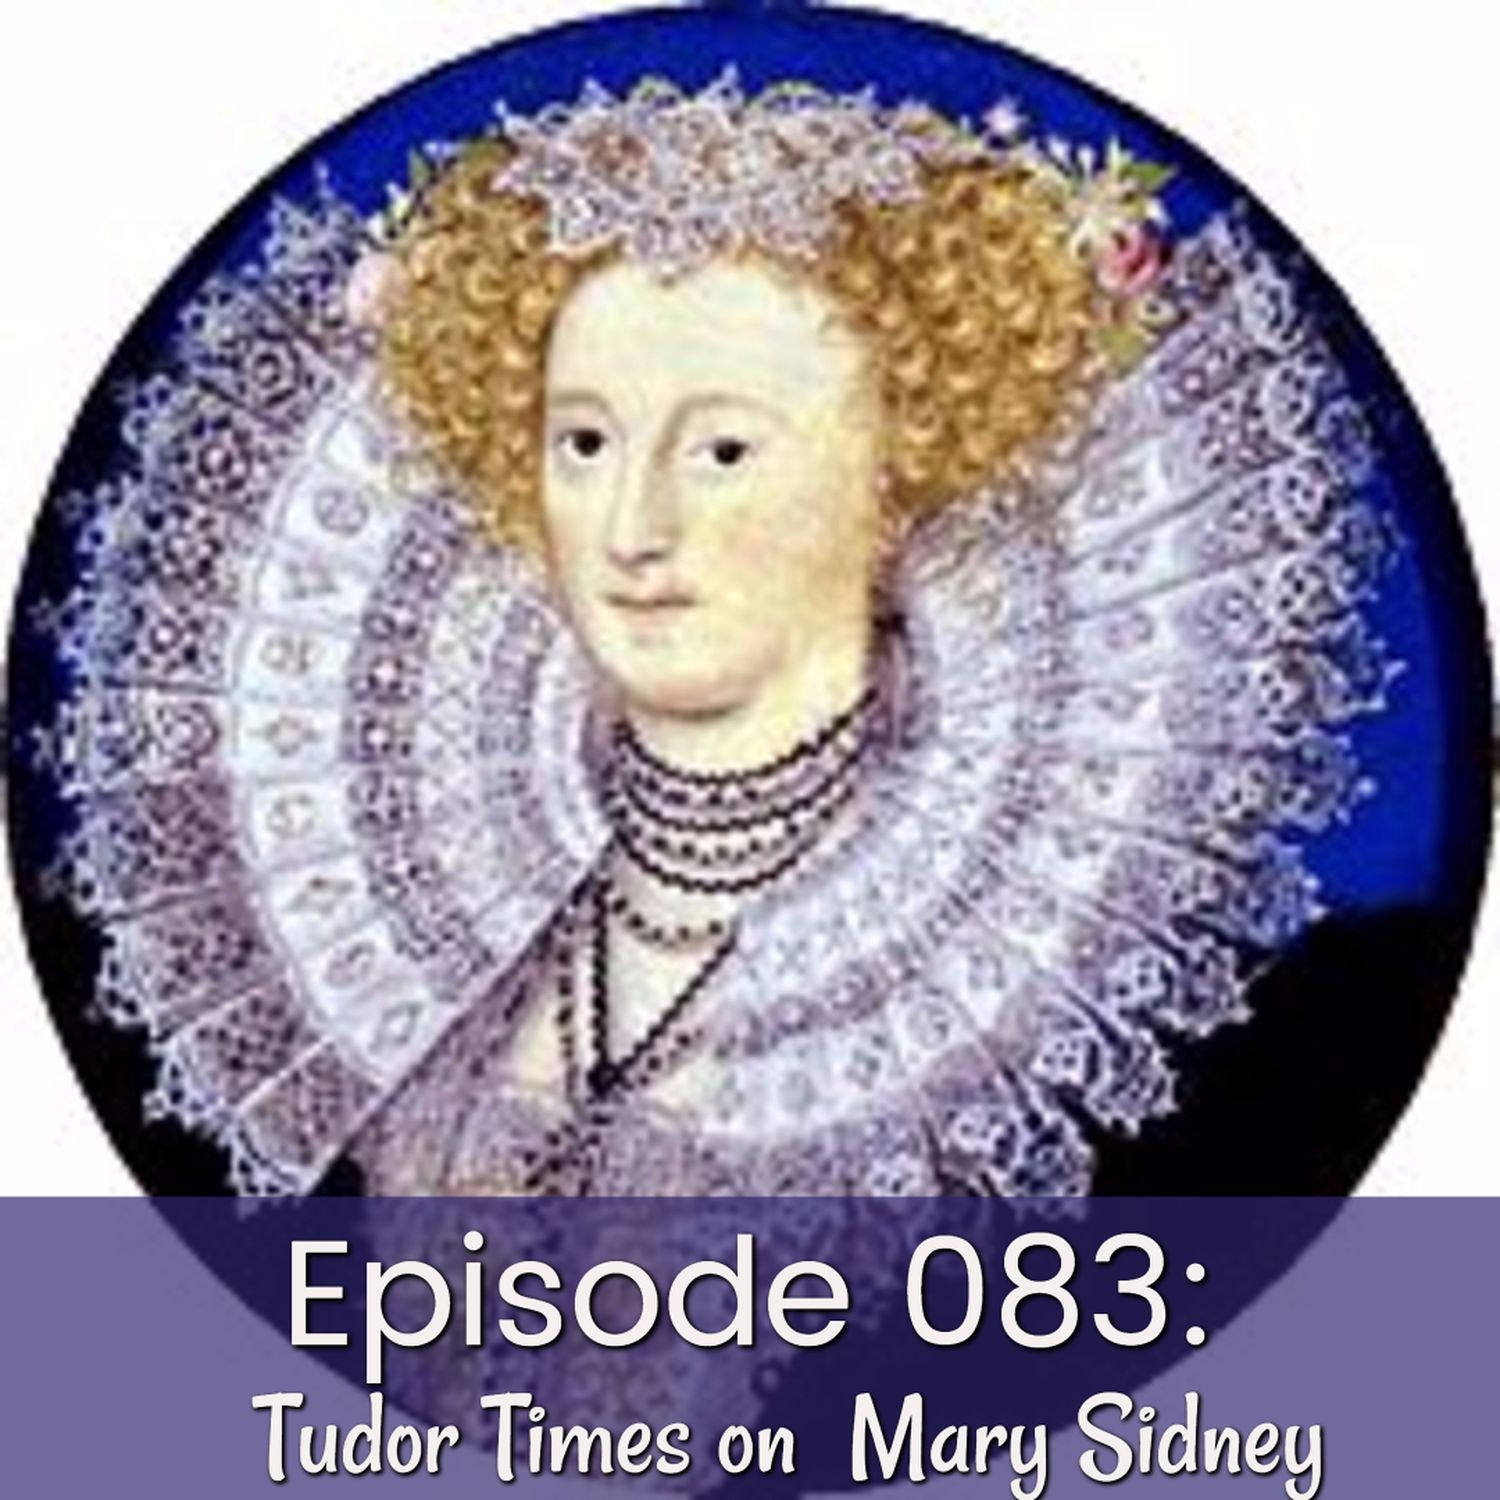 Episode 083: Tudor Times on Mary Sidney